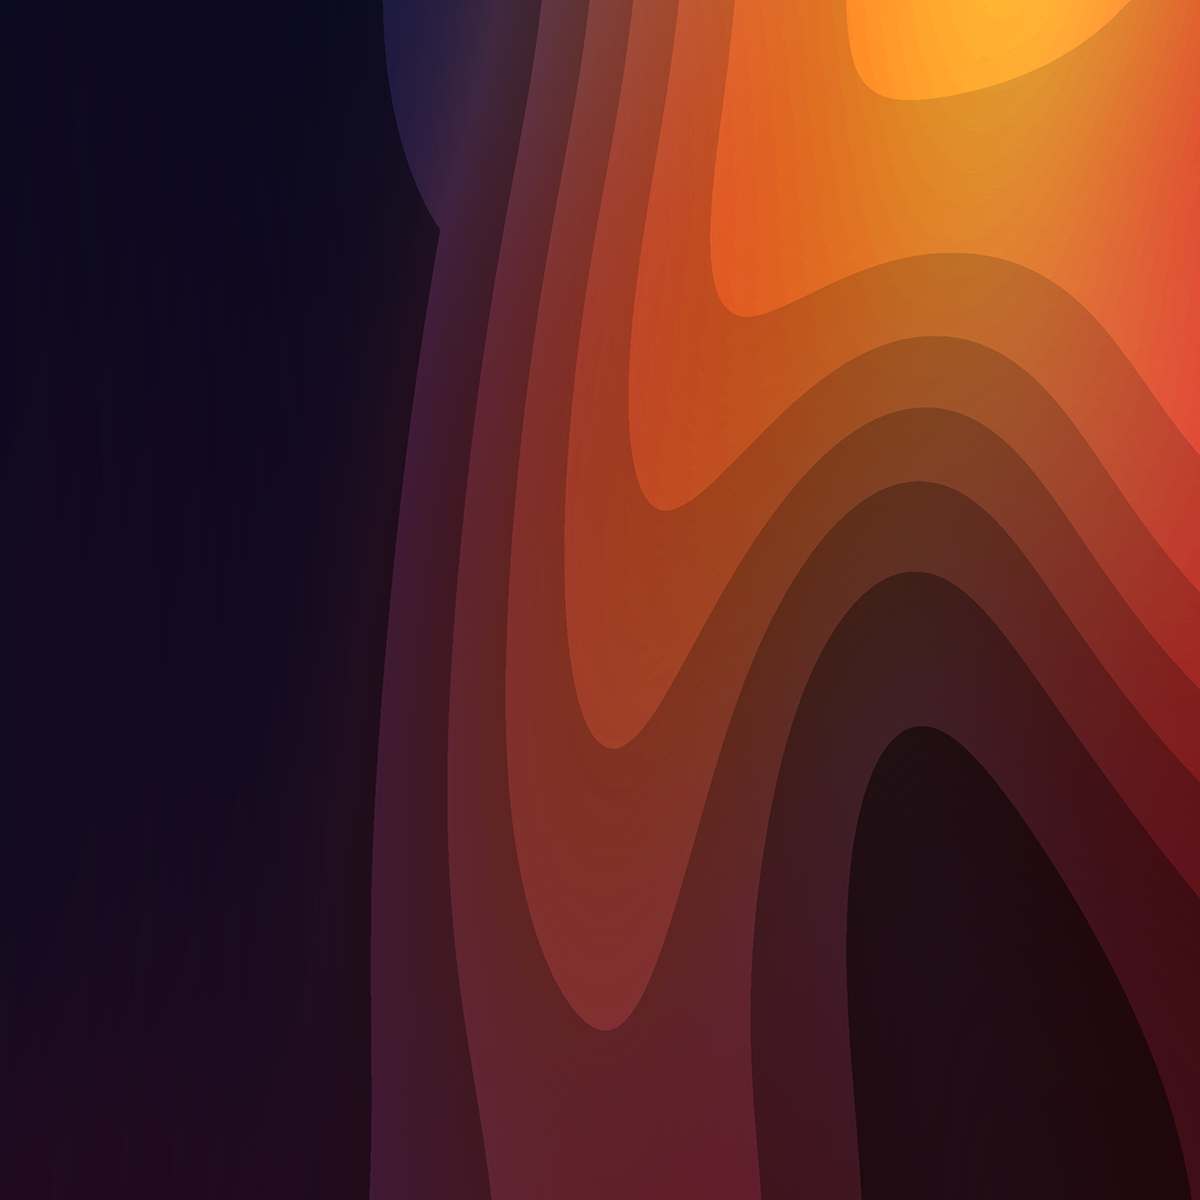 abstract backgrounds shapes colors free download HD Wallpapers